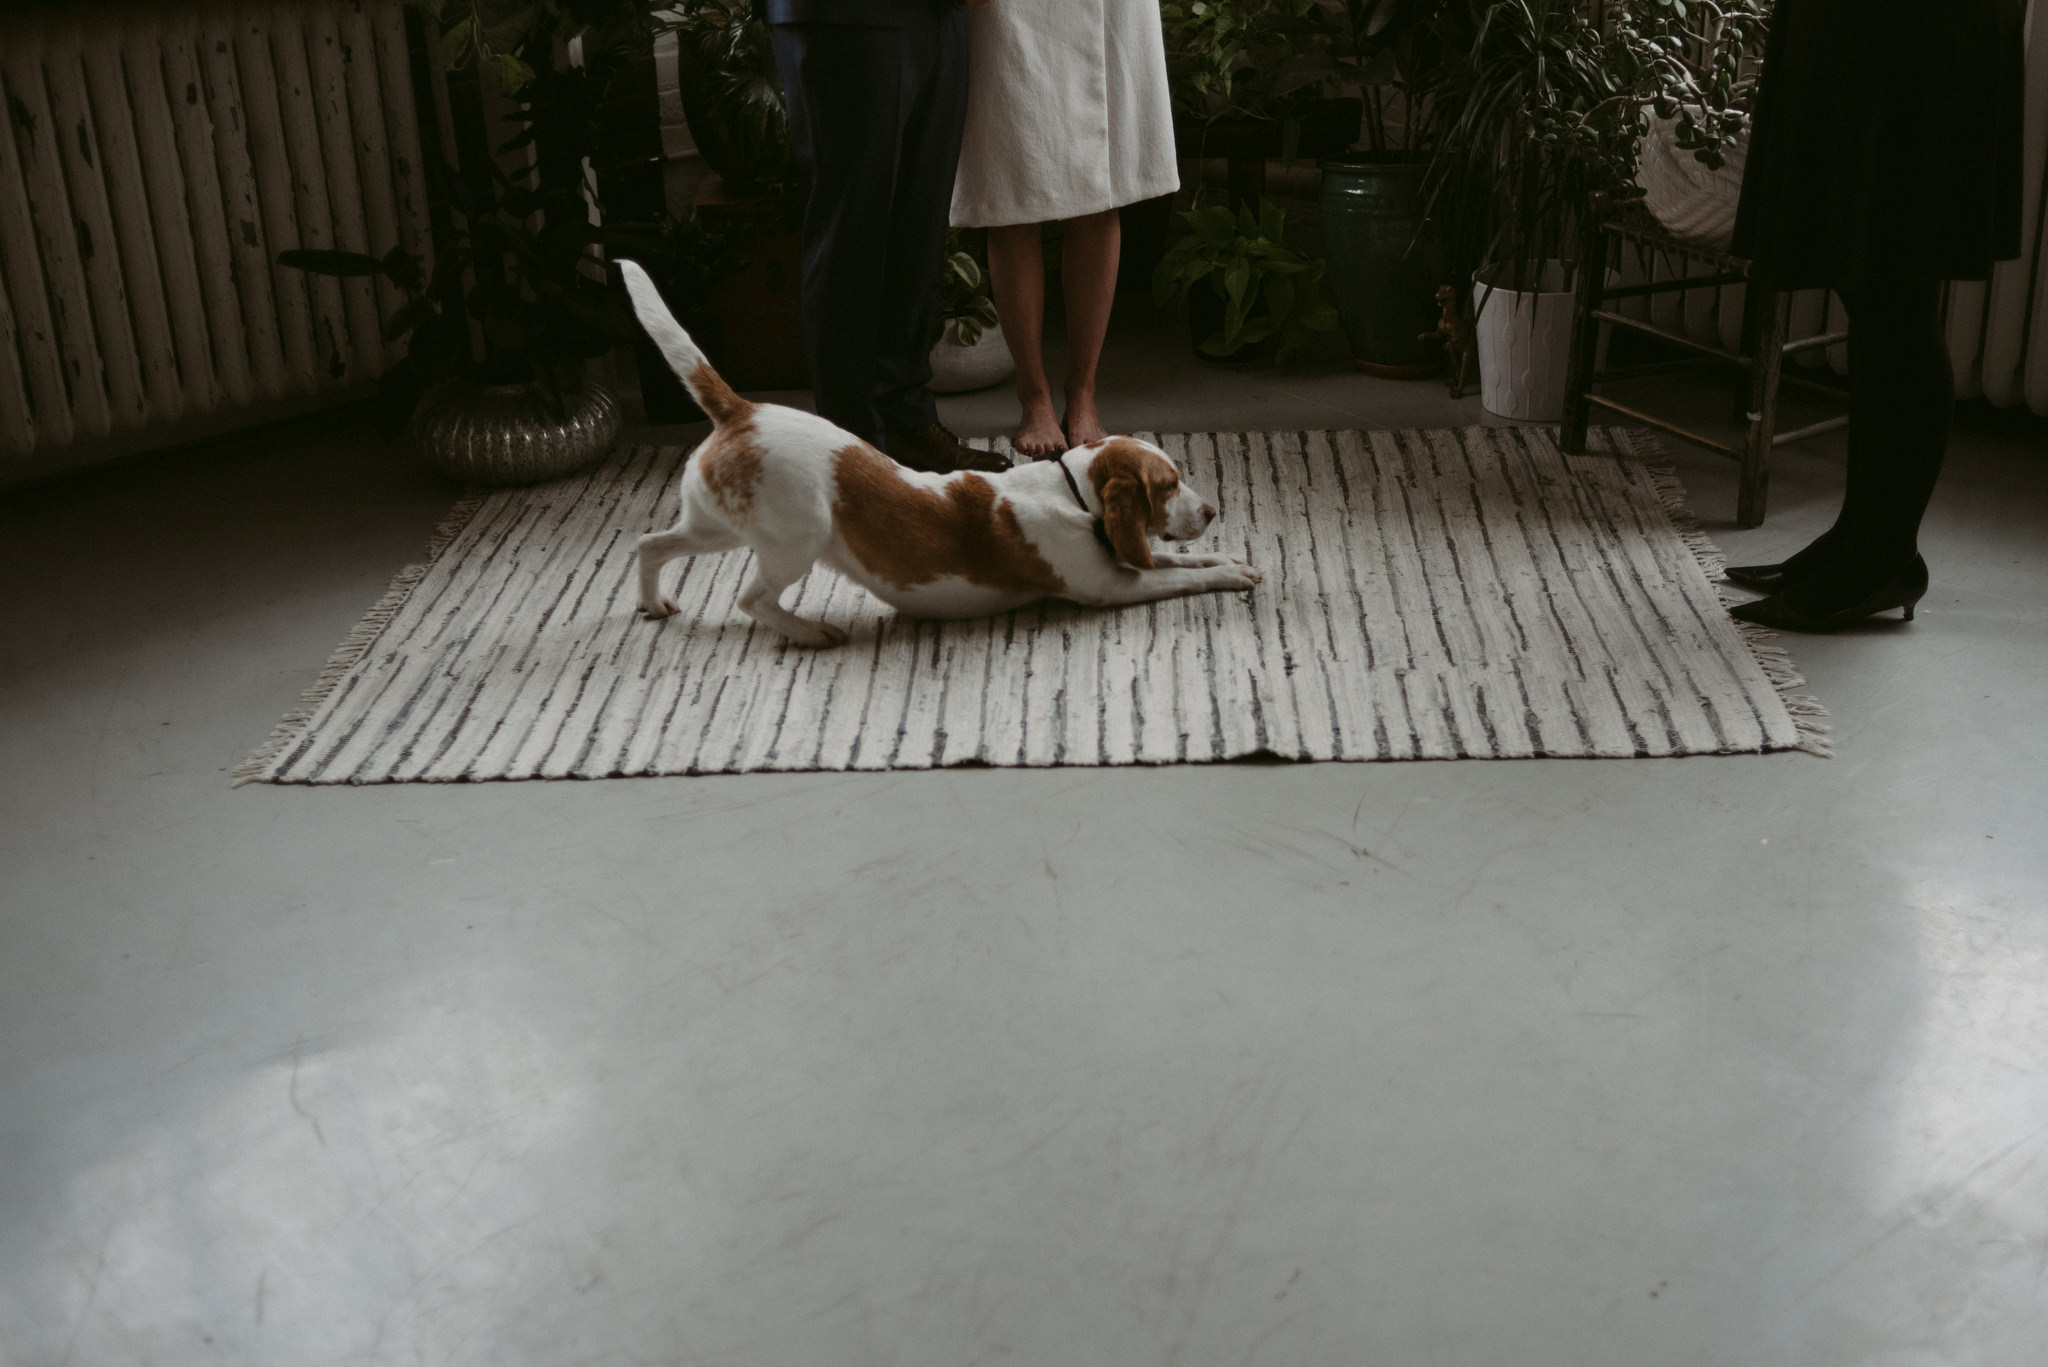 Dog stretching on carpet during wedding ceremony in loft